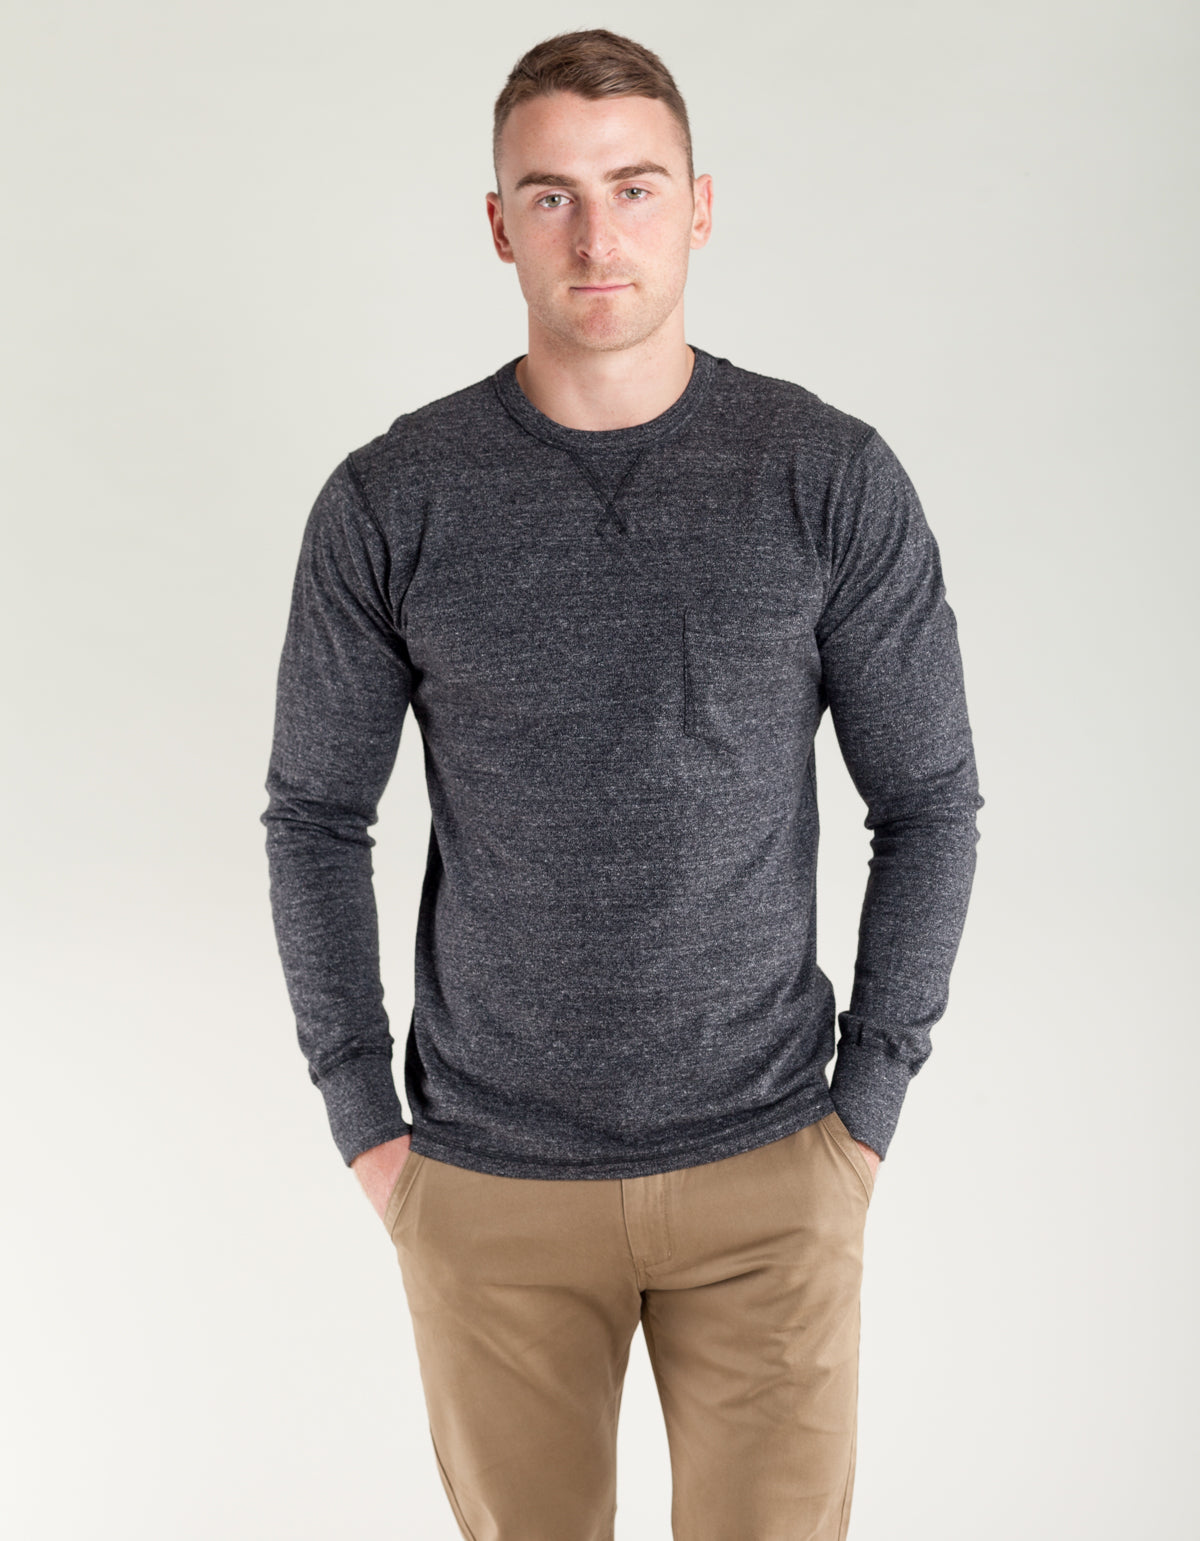 National Athletic Goods Pocket Gym Tee Black Heather